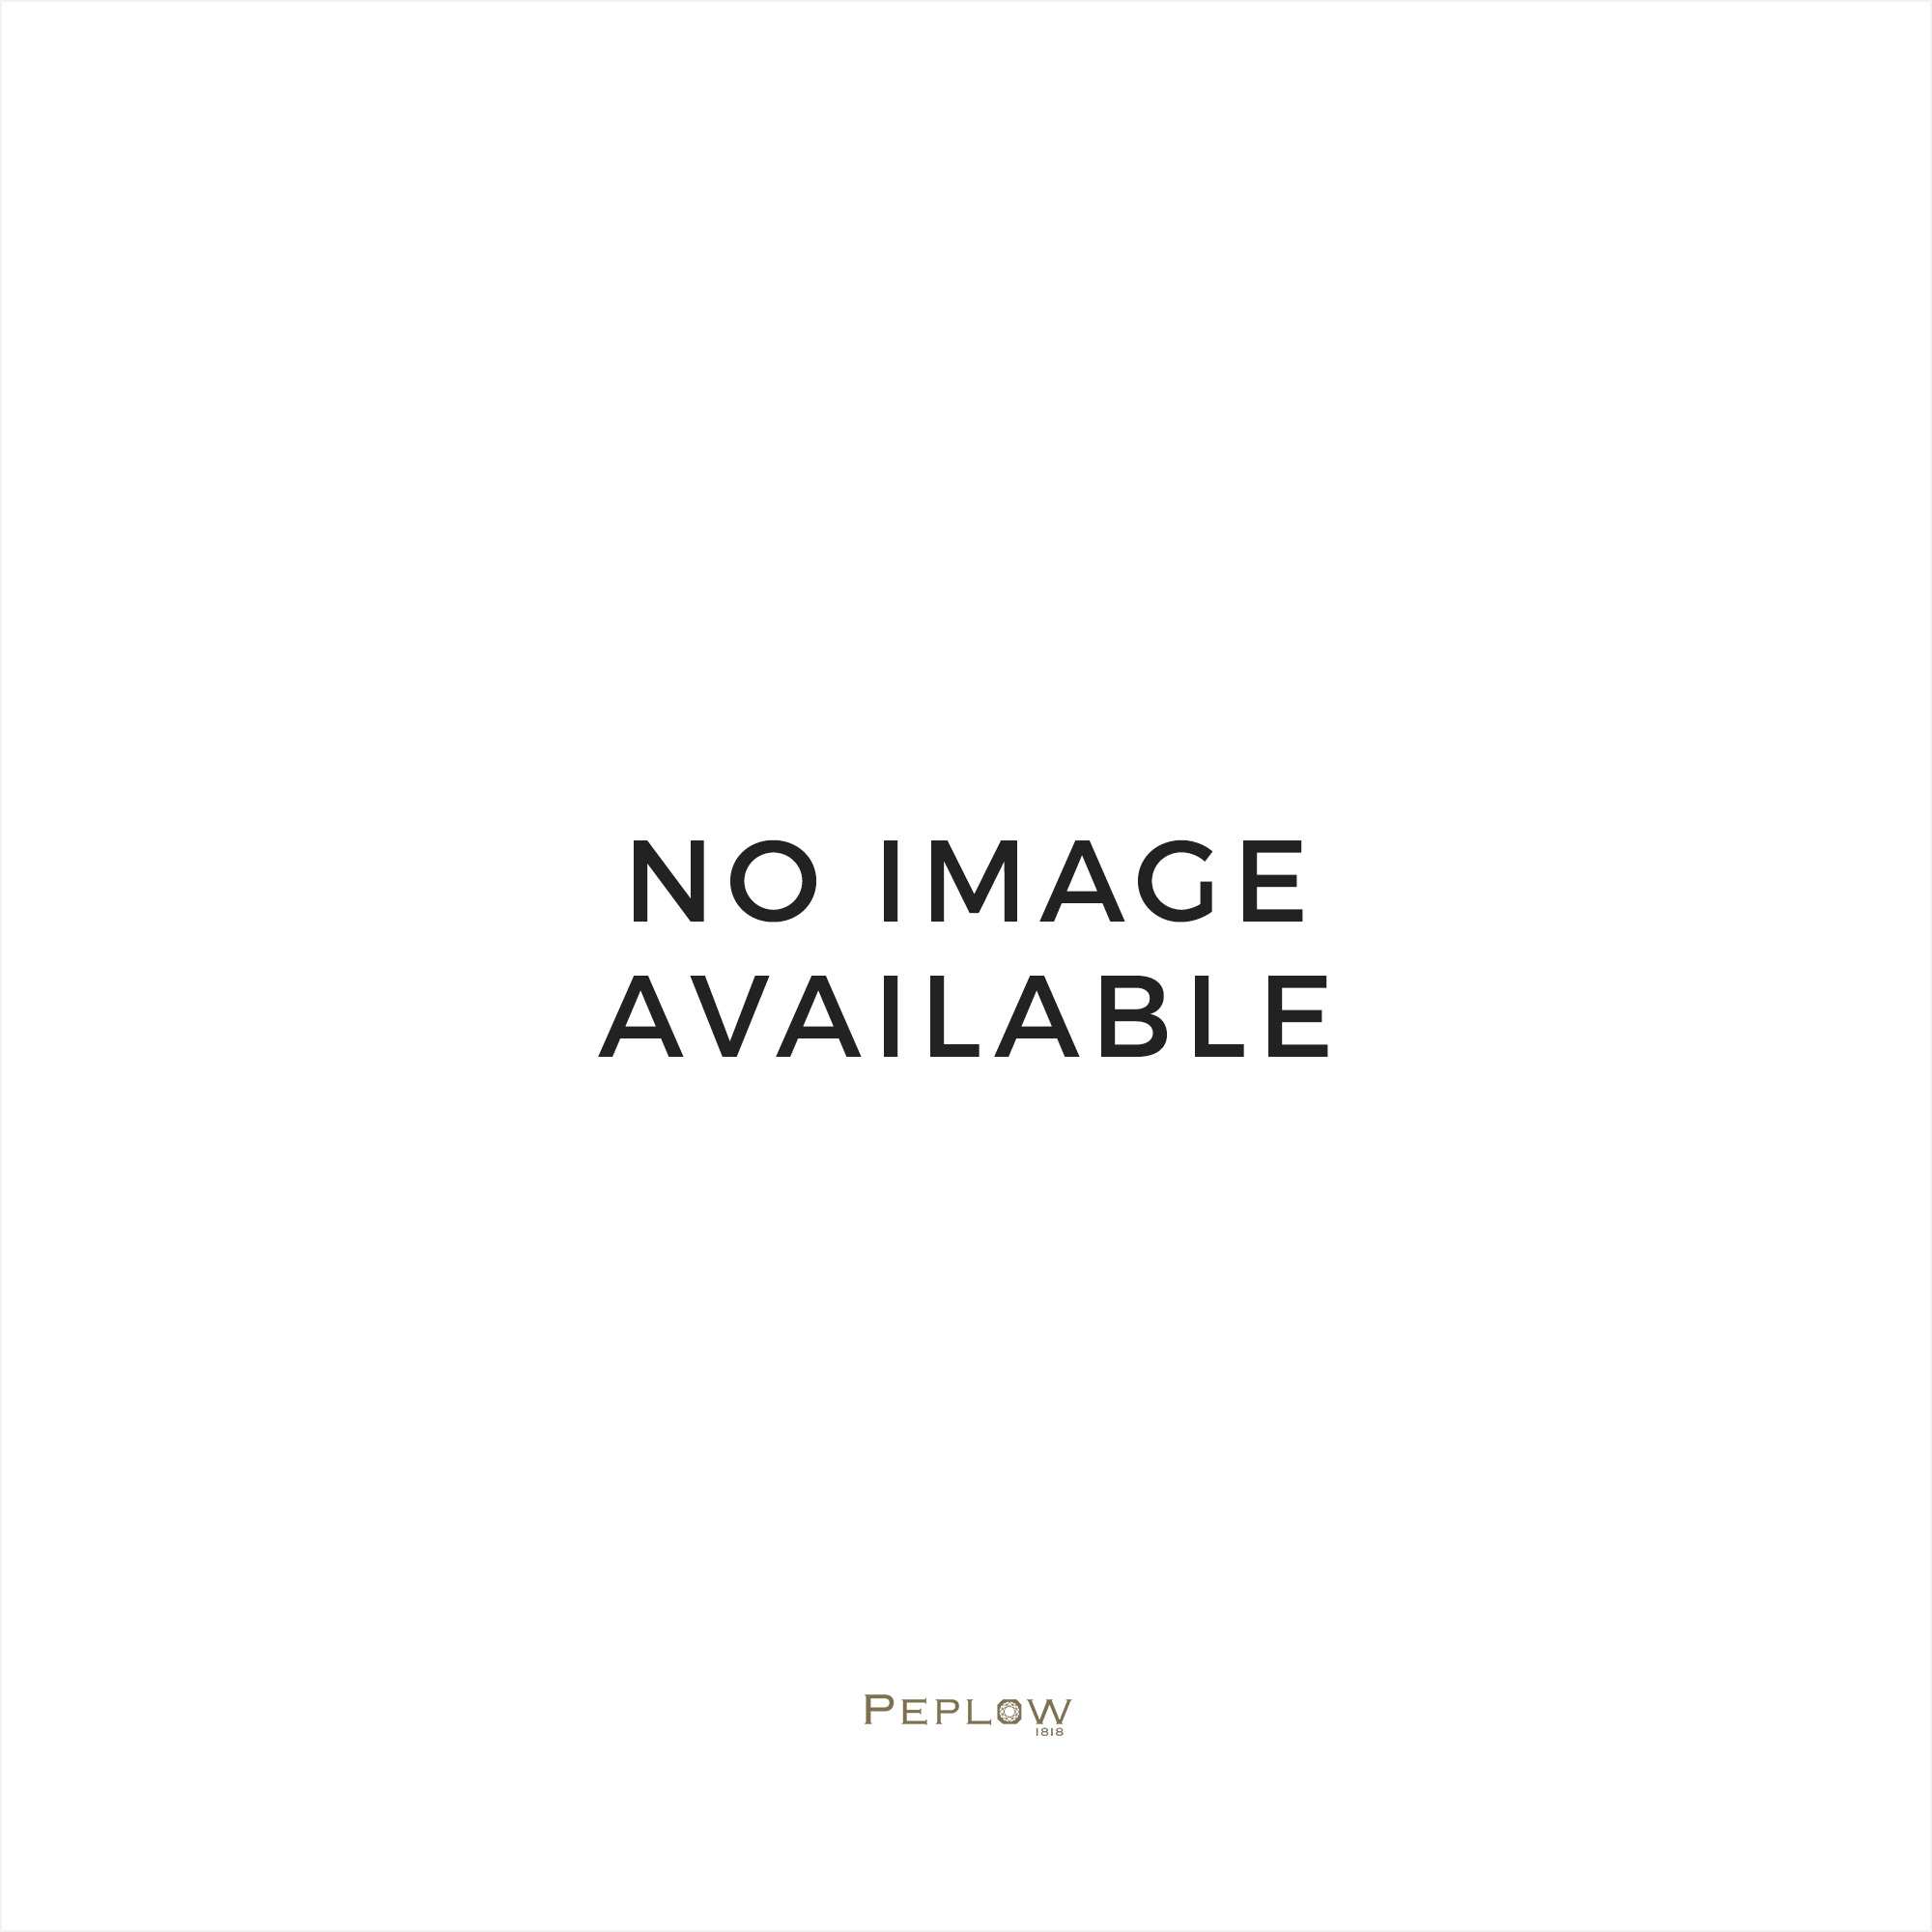 PREOWNED Gents platinum Rolex Oyster Perpetual Day Date